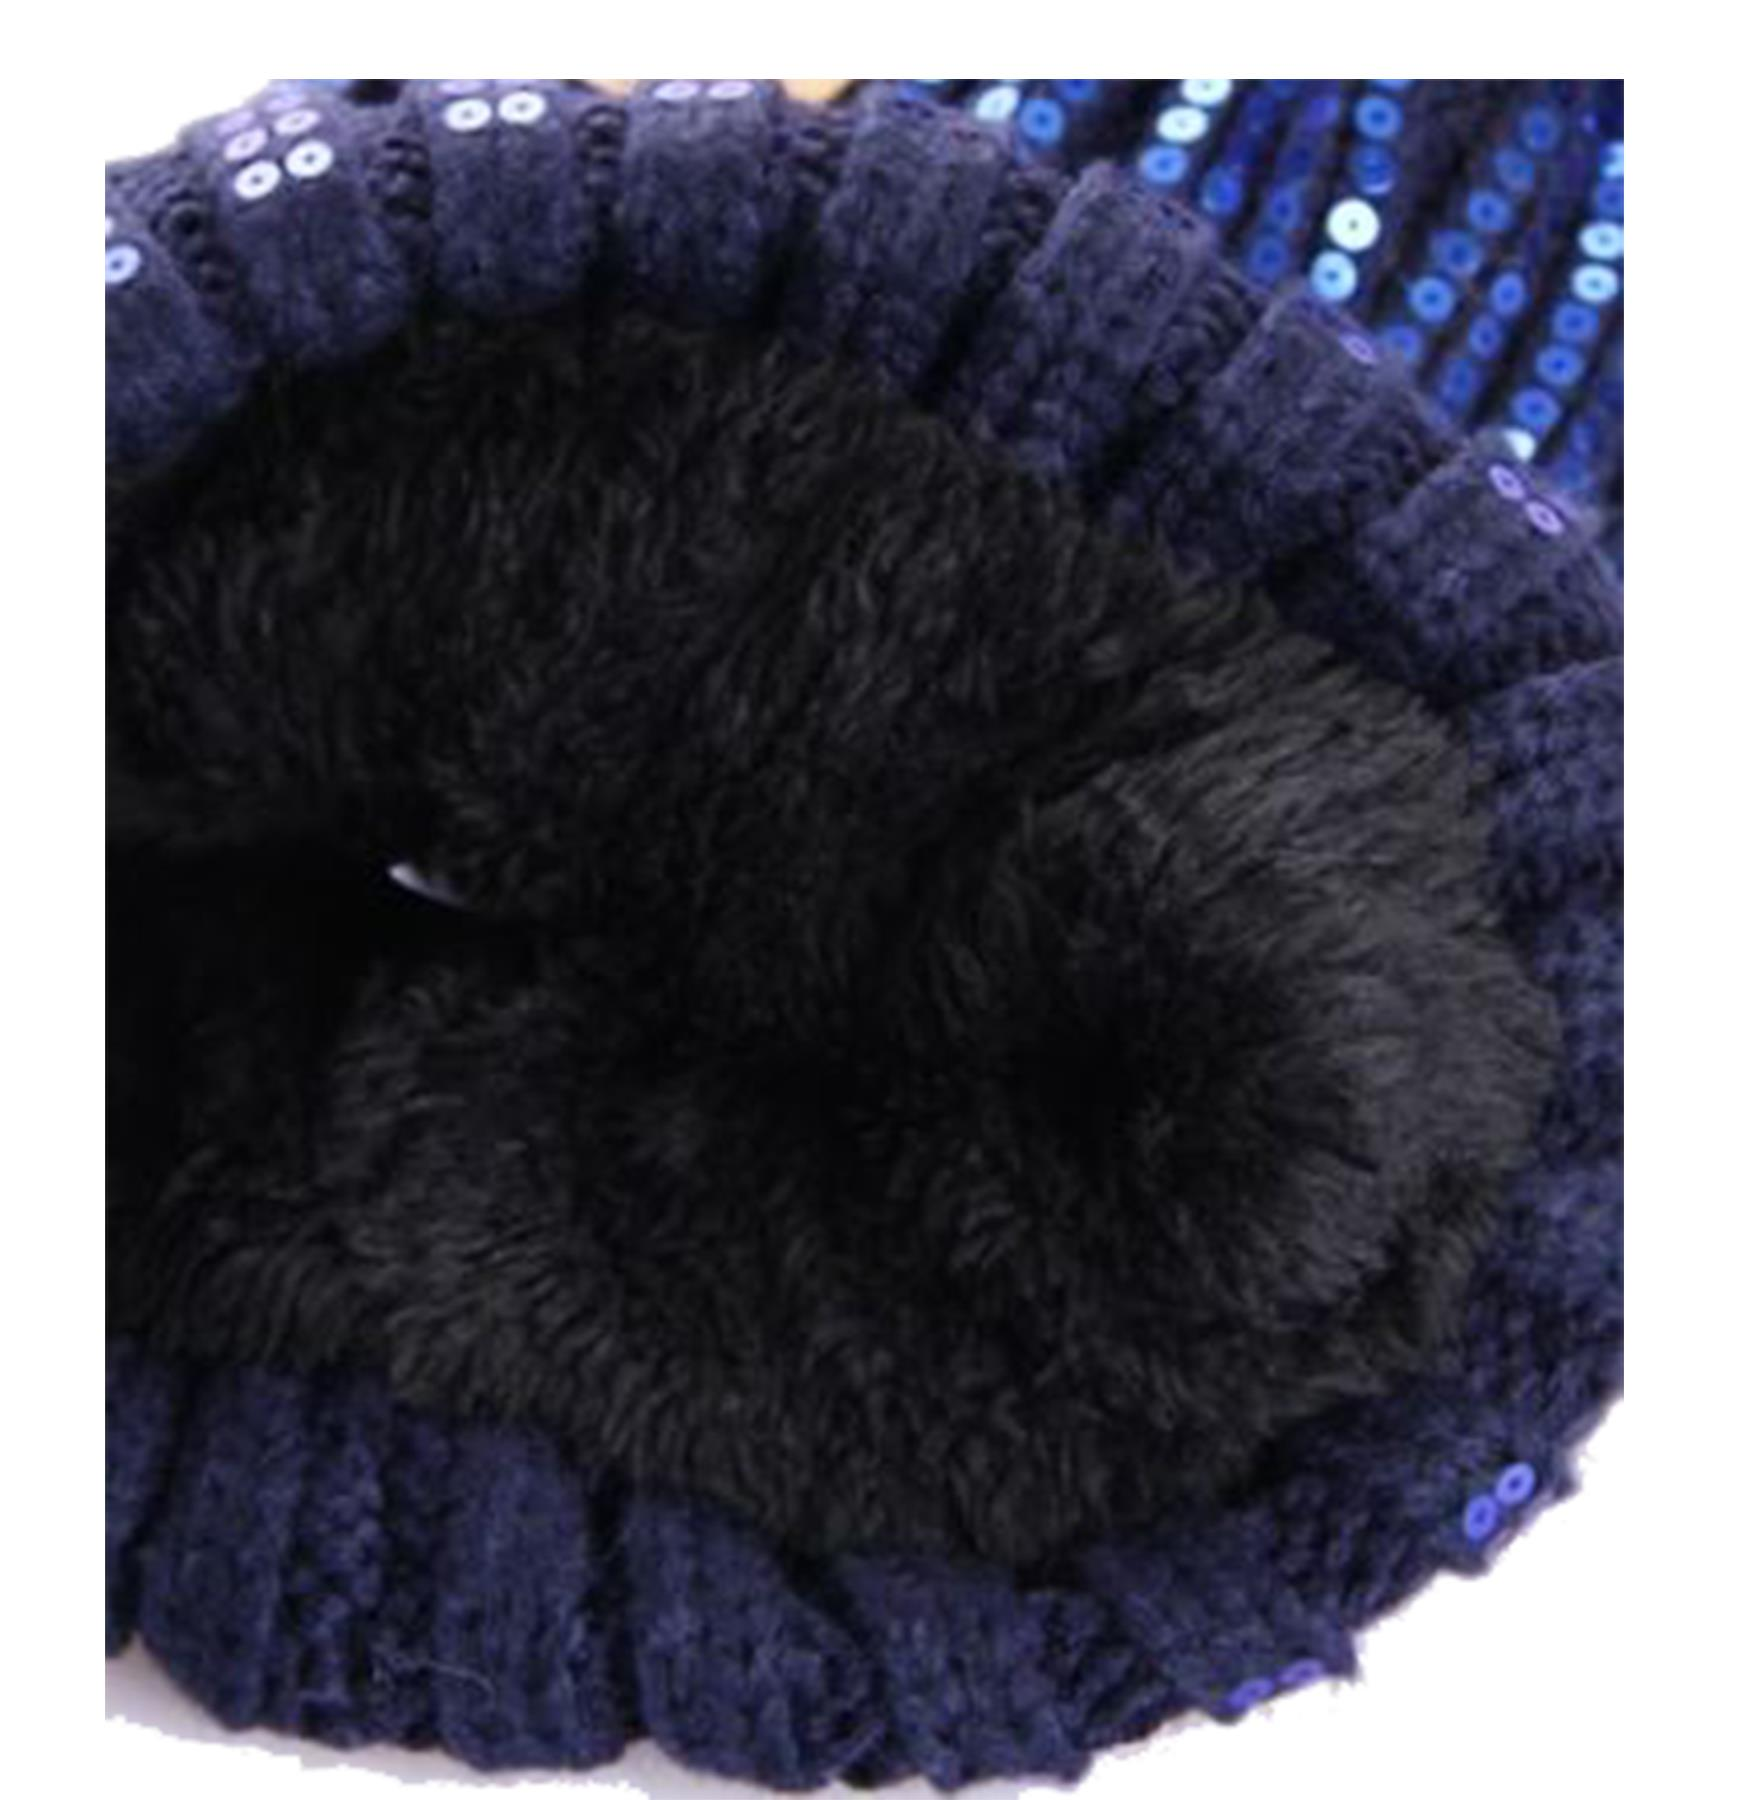 New-Ladies-Fleece-Lining-Sequins-Faux-Fur-Pom-Pom-Winter-Beanie-Hat thumbnail 7